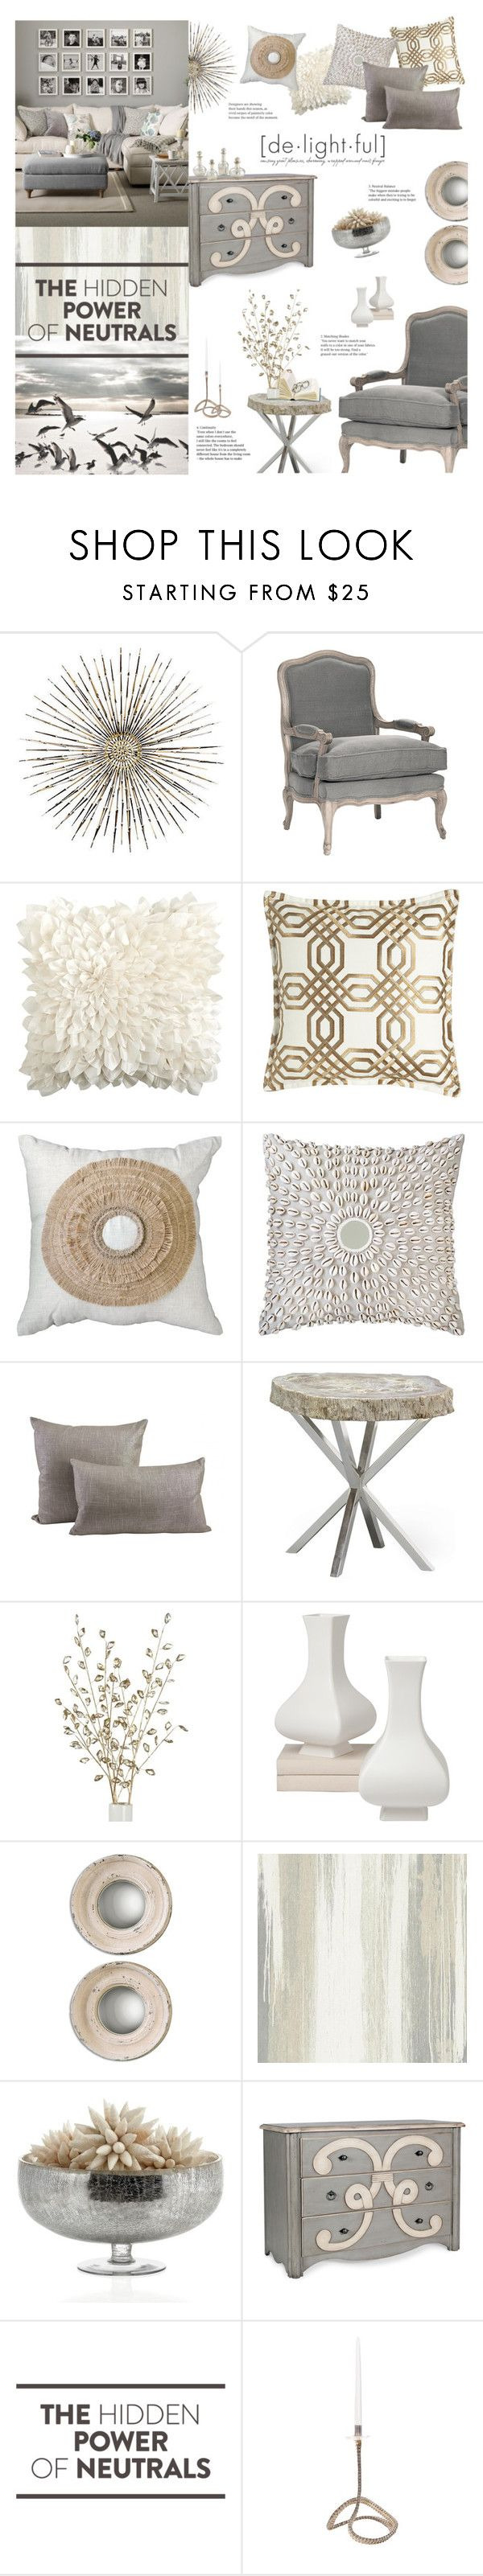 """Fade To Grey"" by happilyjynxed ❤ liked on Polyvore featuring interior, interiors, interior design, home, home decor, interior decorating, Frontgate, Pier 1 Imports, Bandhini Homewear Design and Jayson Home"